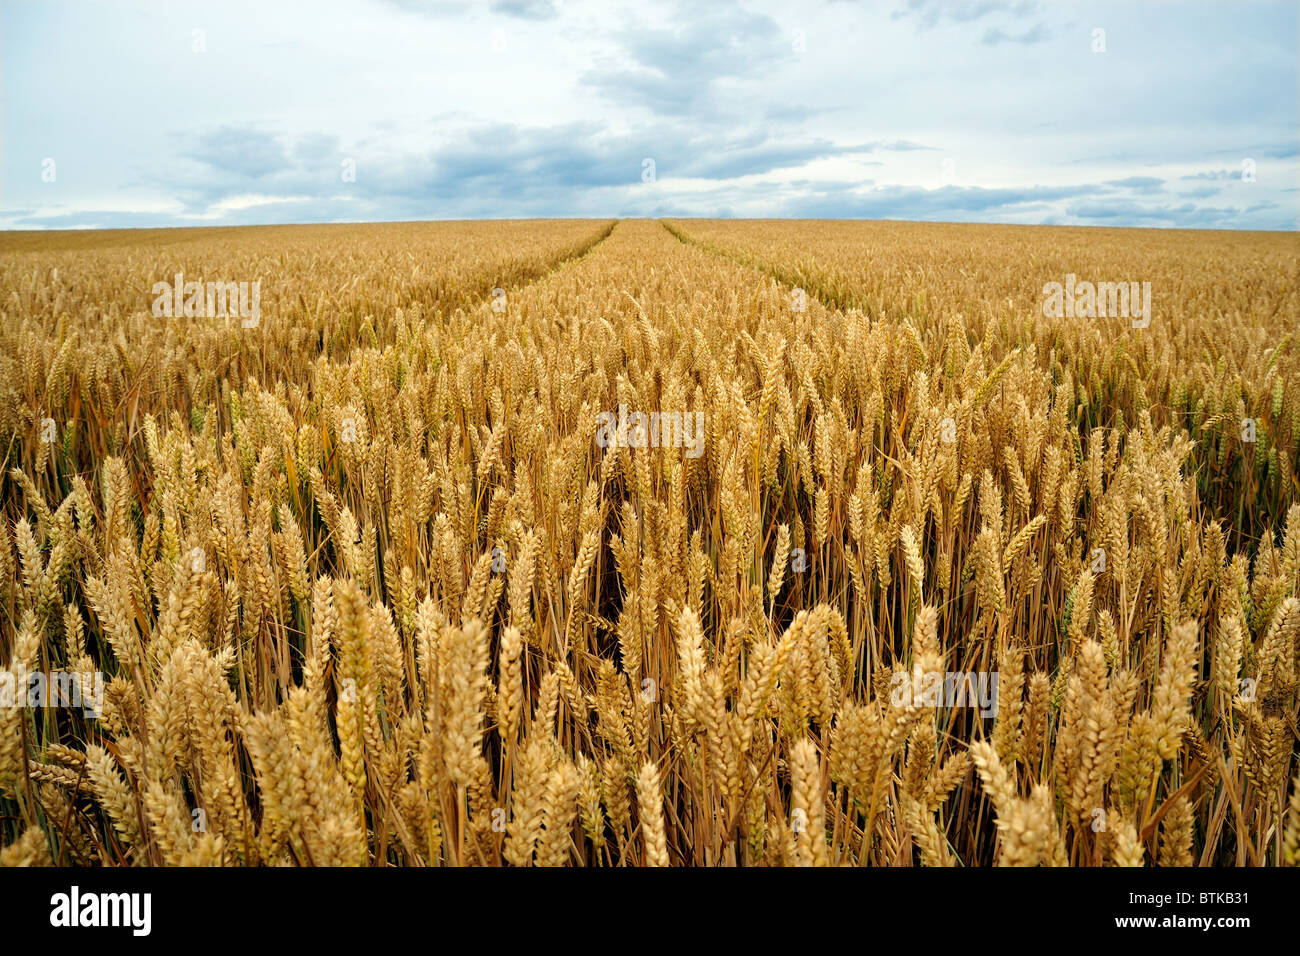 WHEATFIELD OR FIELD OF GROWING WHEAT - Stock Image